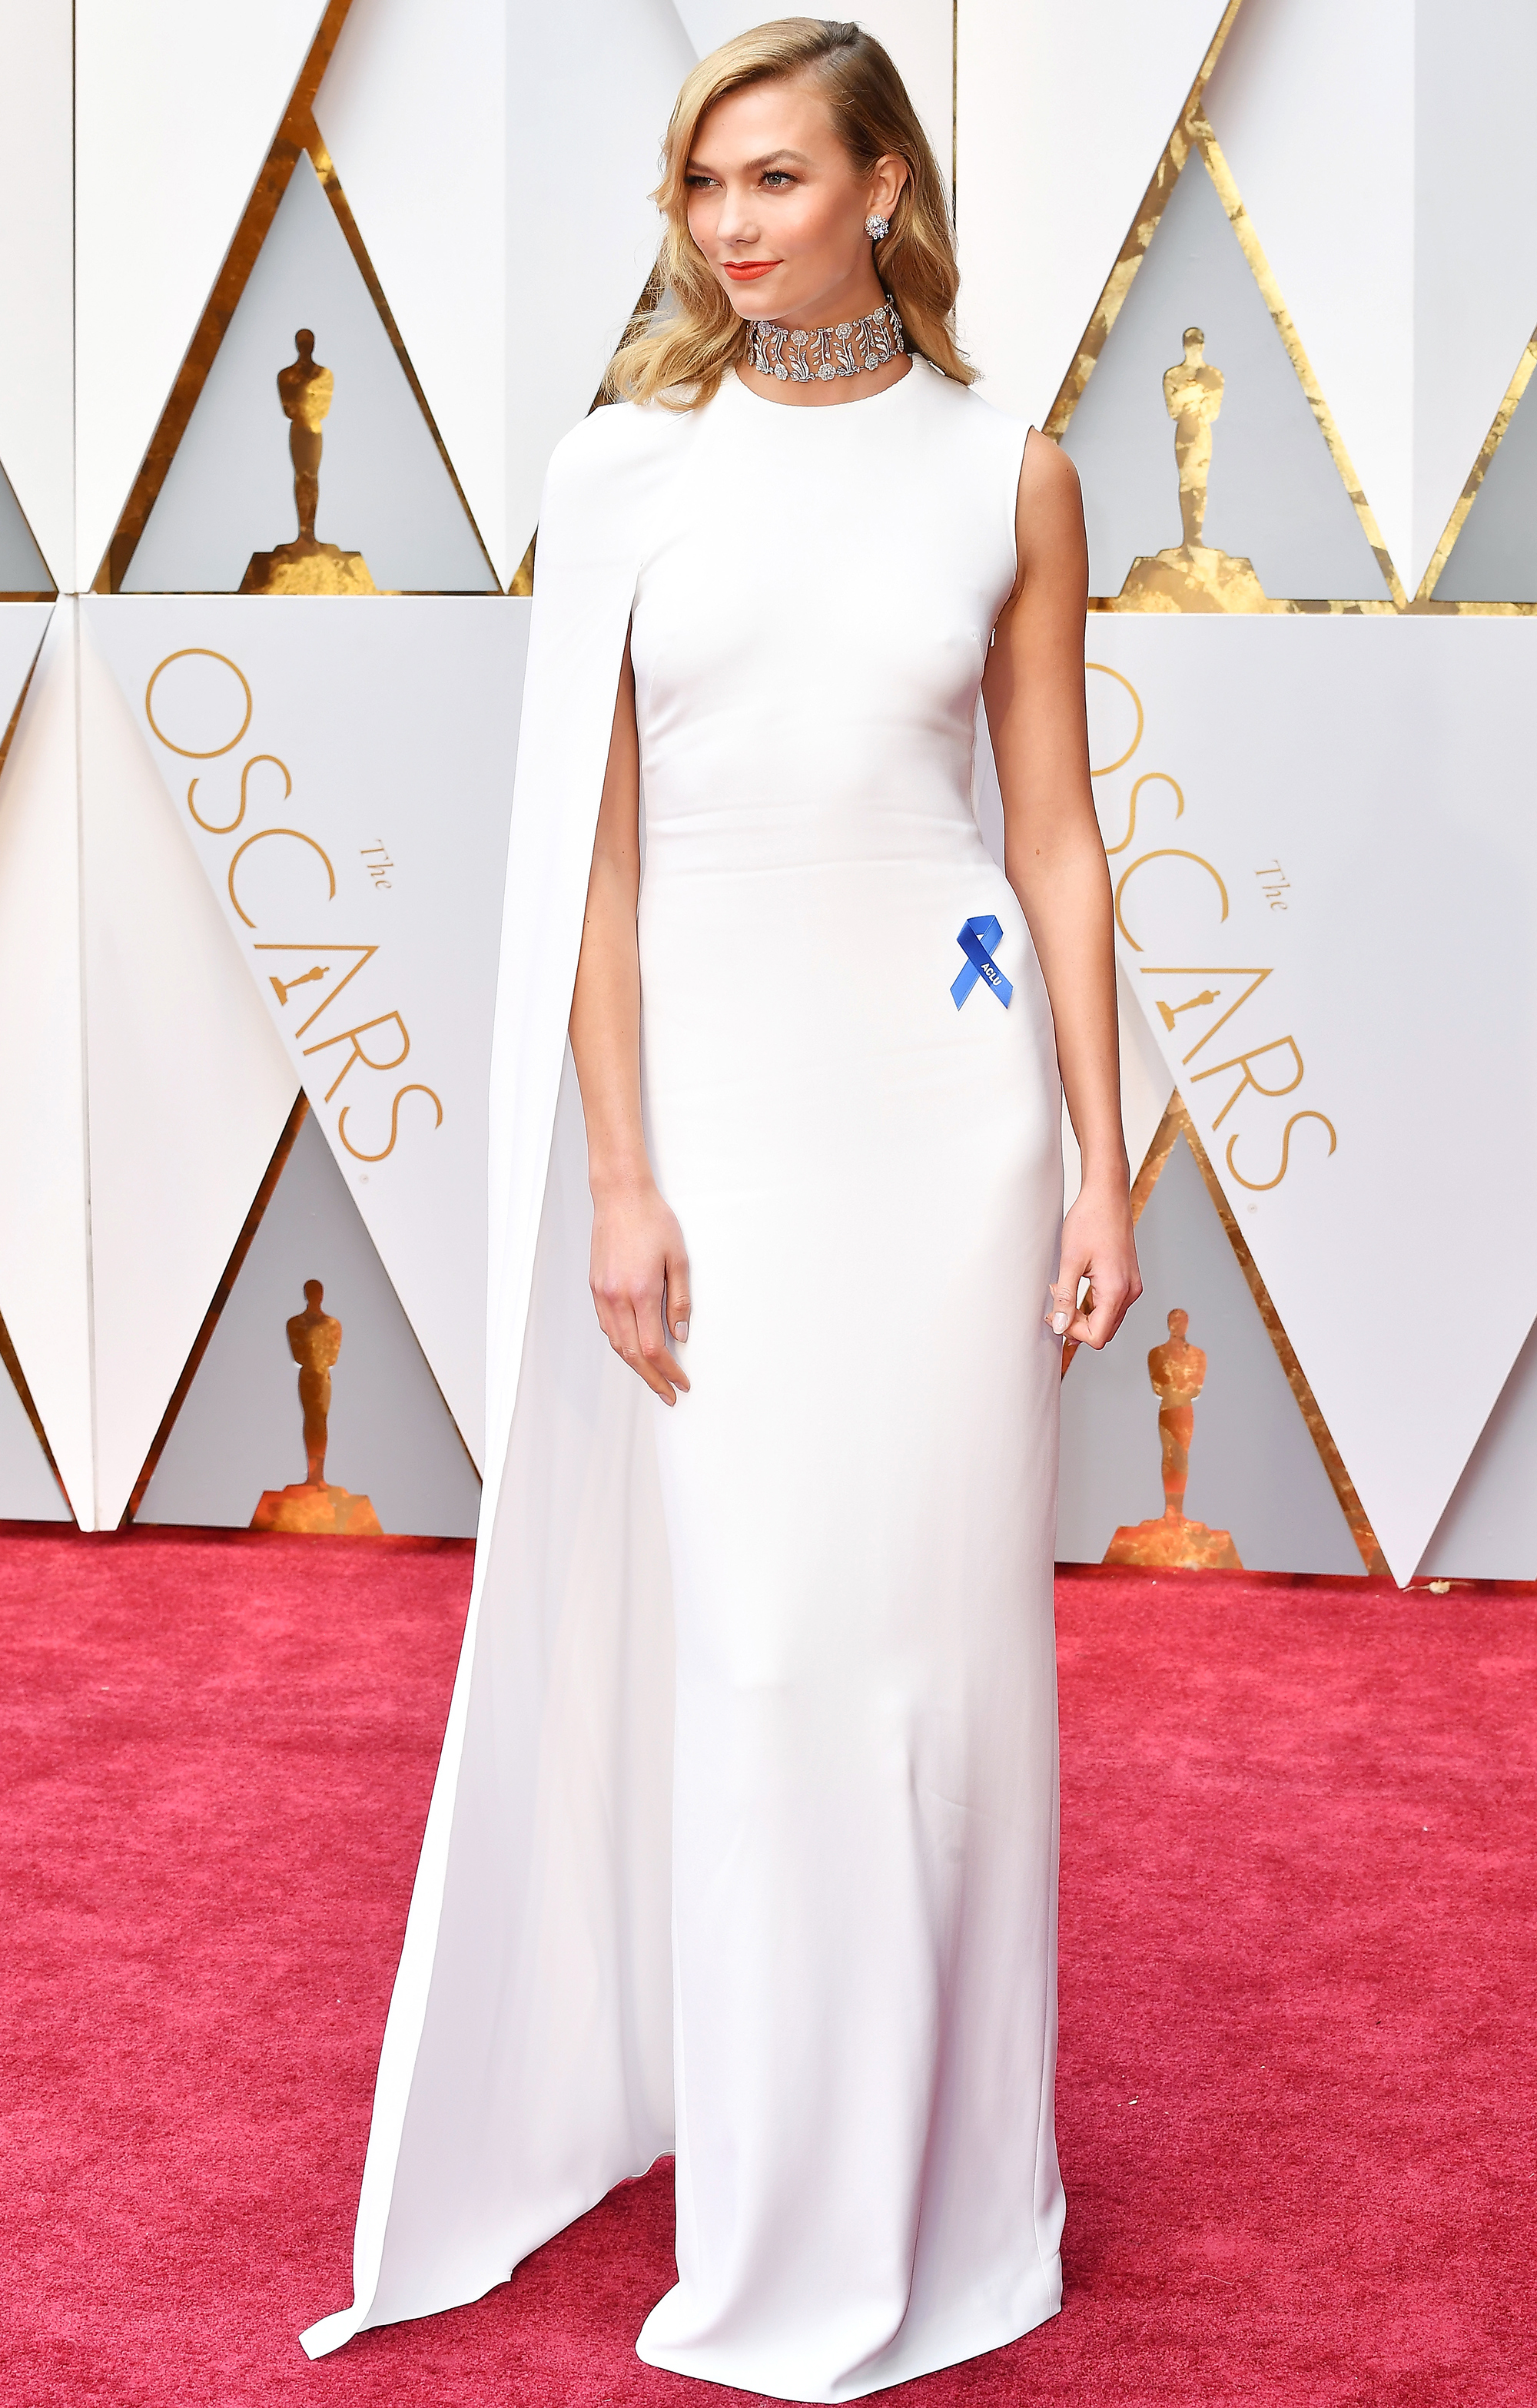 Karlie Kloss wears Stella McCartney and her ACLU blue ribbon.